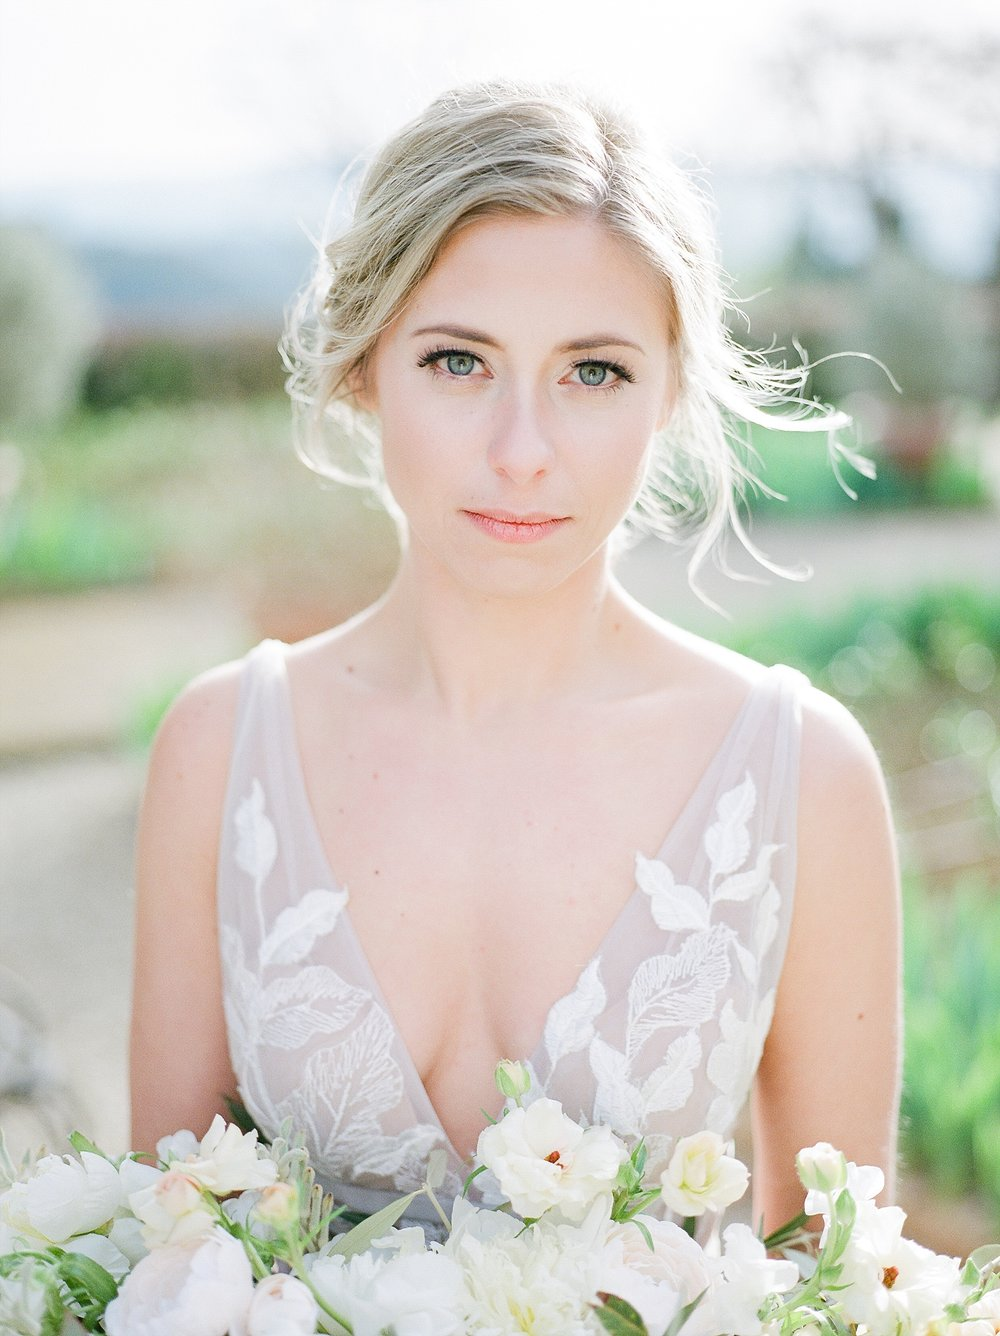 All White Destination Wedding in the Hills of Tuscany Italy at Estate Borgo Petrognano by Kelsi Kliethermes Photography_0002.jpg